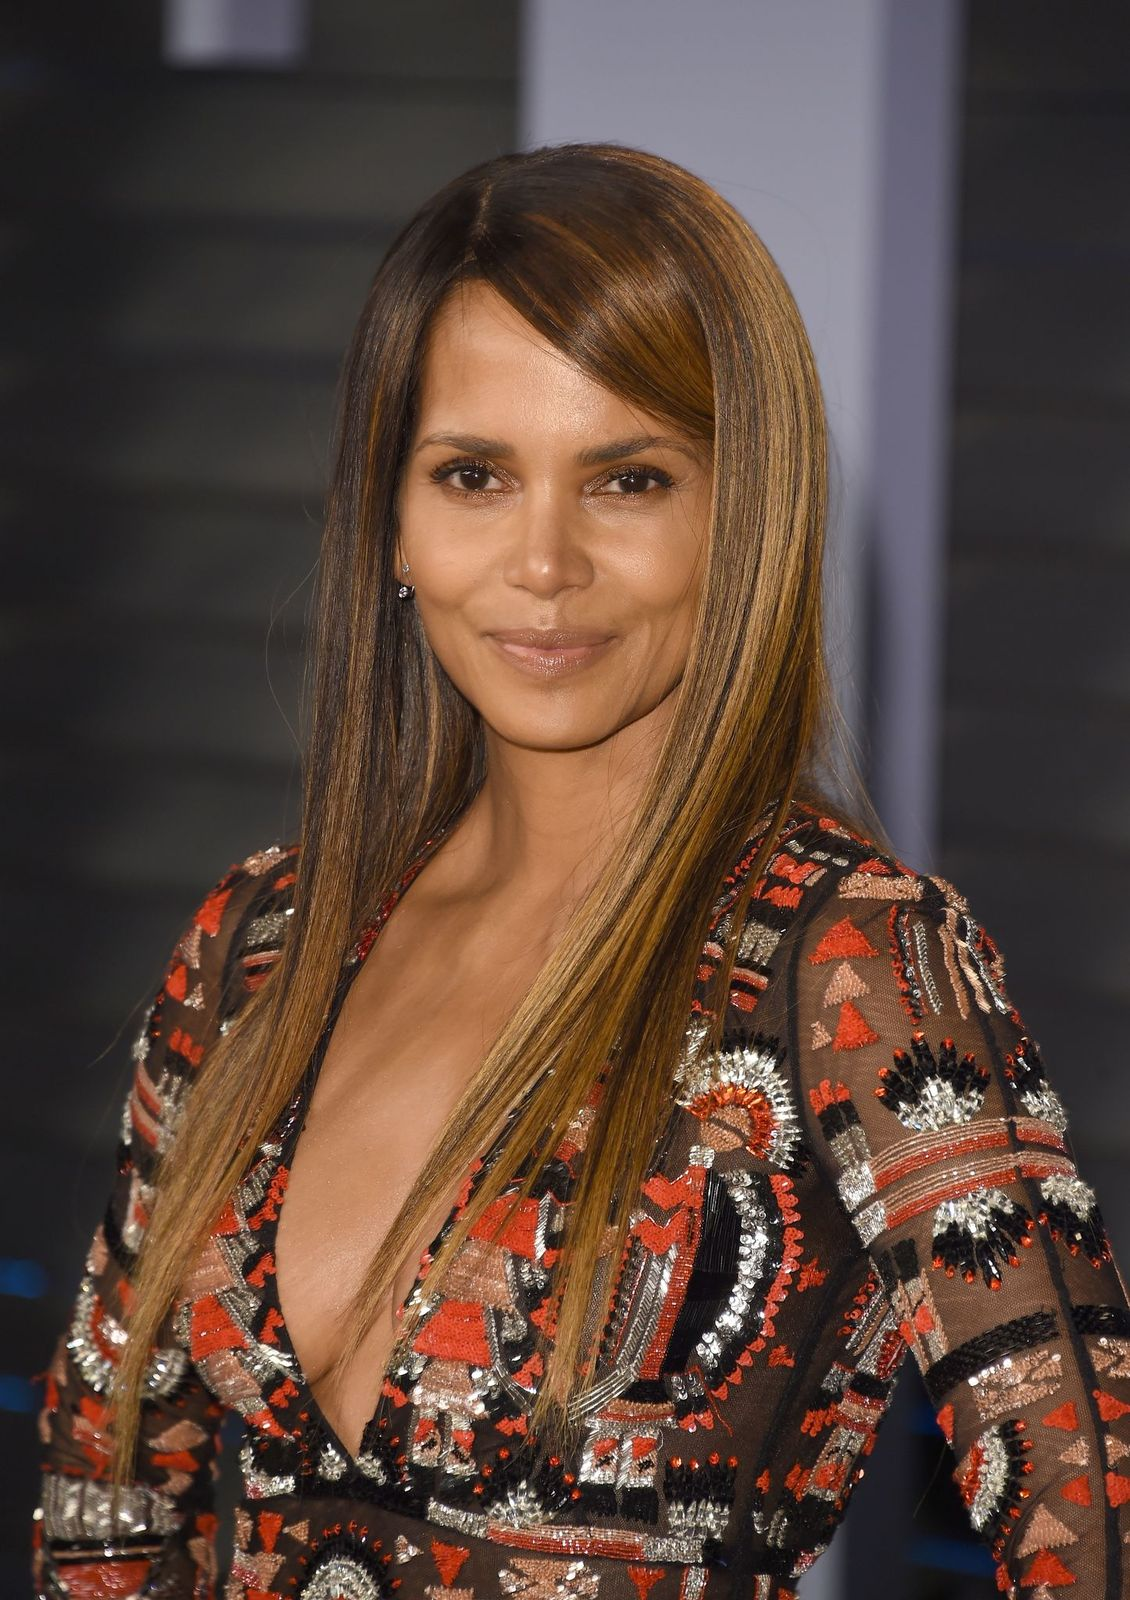 Halle Berry at the Vanity Fair Oscar Party at the Wallis Annenberg Center for the Performing Arts on March 4, 2018 in Beverly Hills, California | Photo: Getty Images